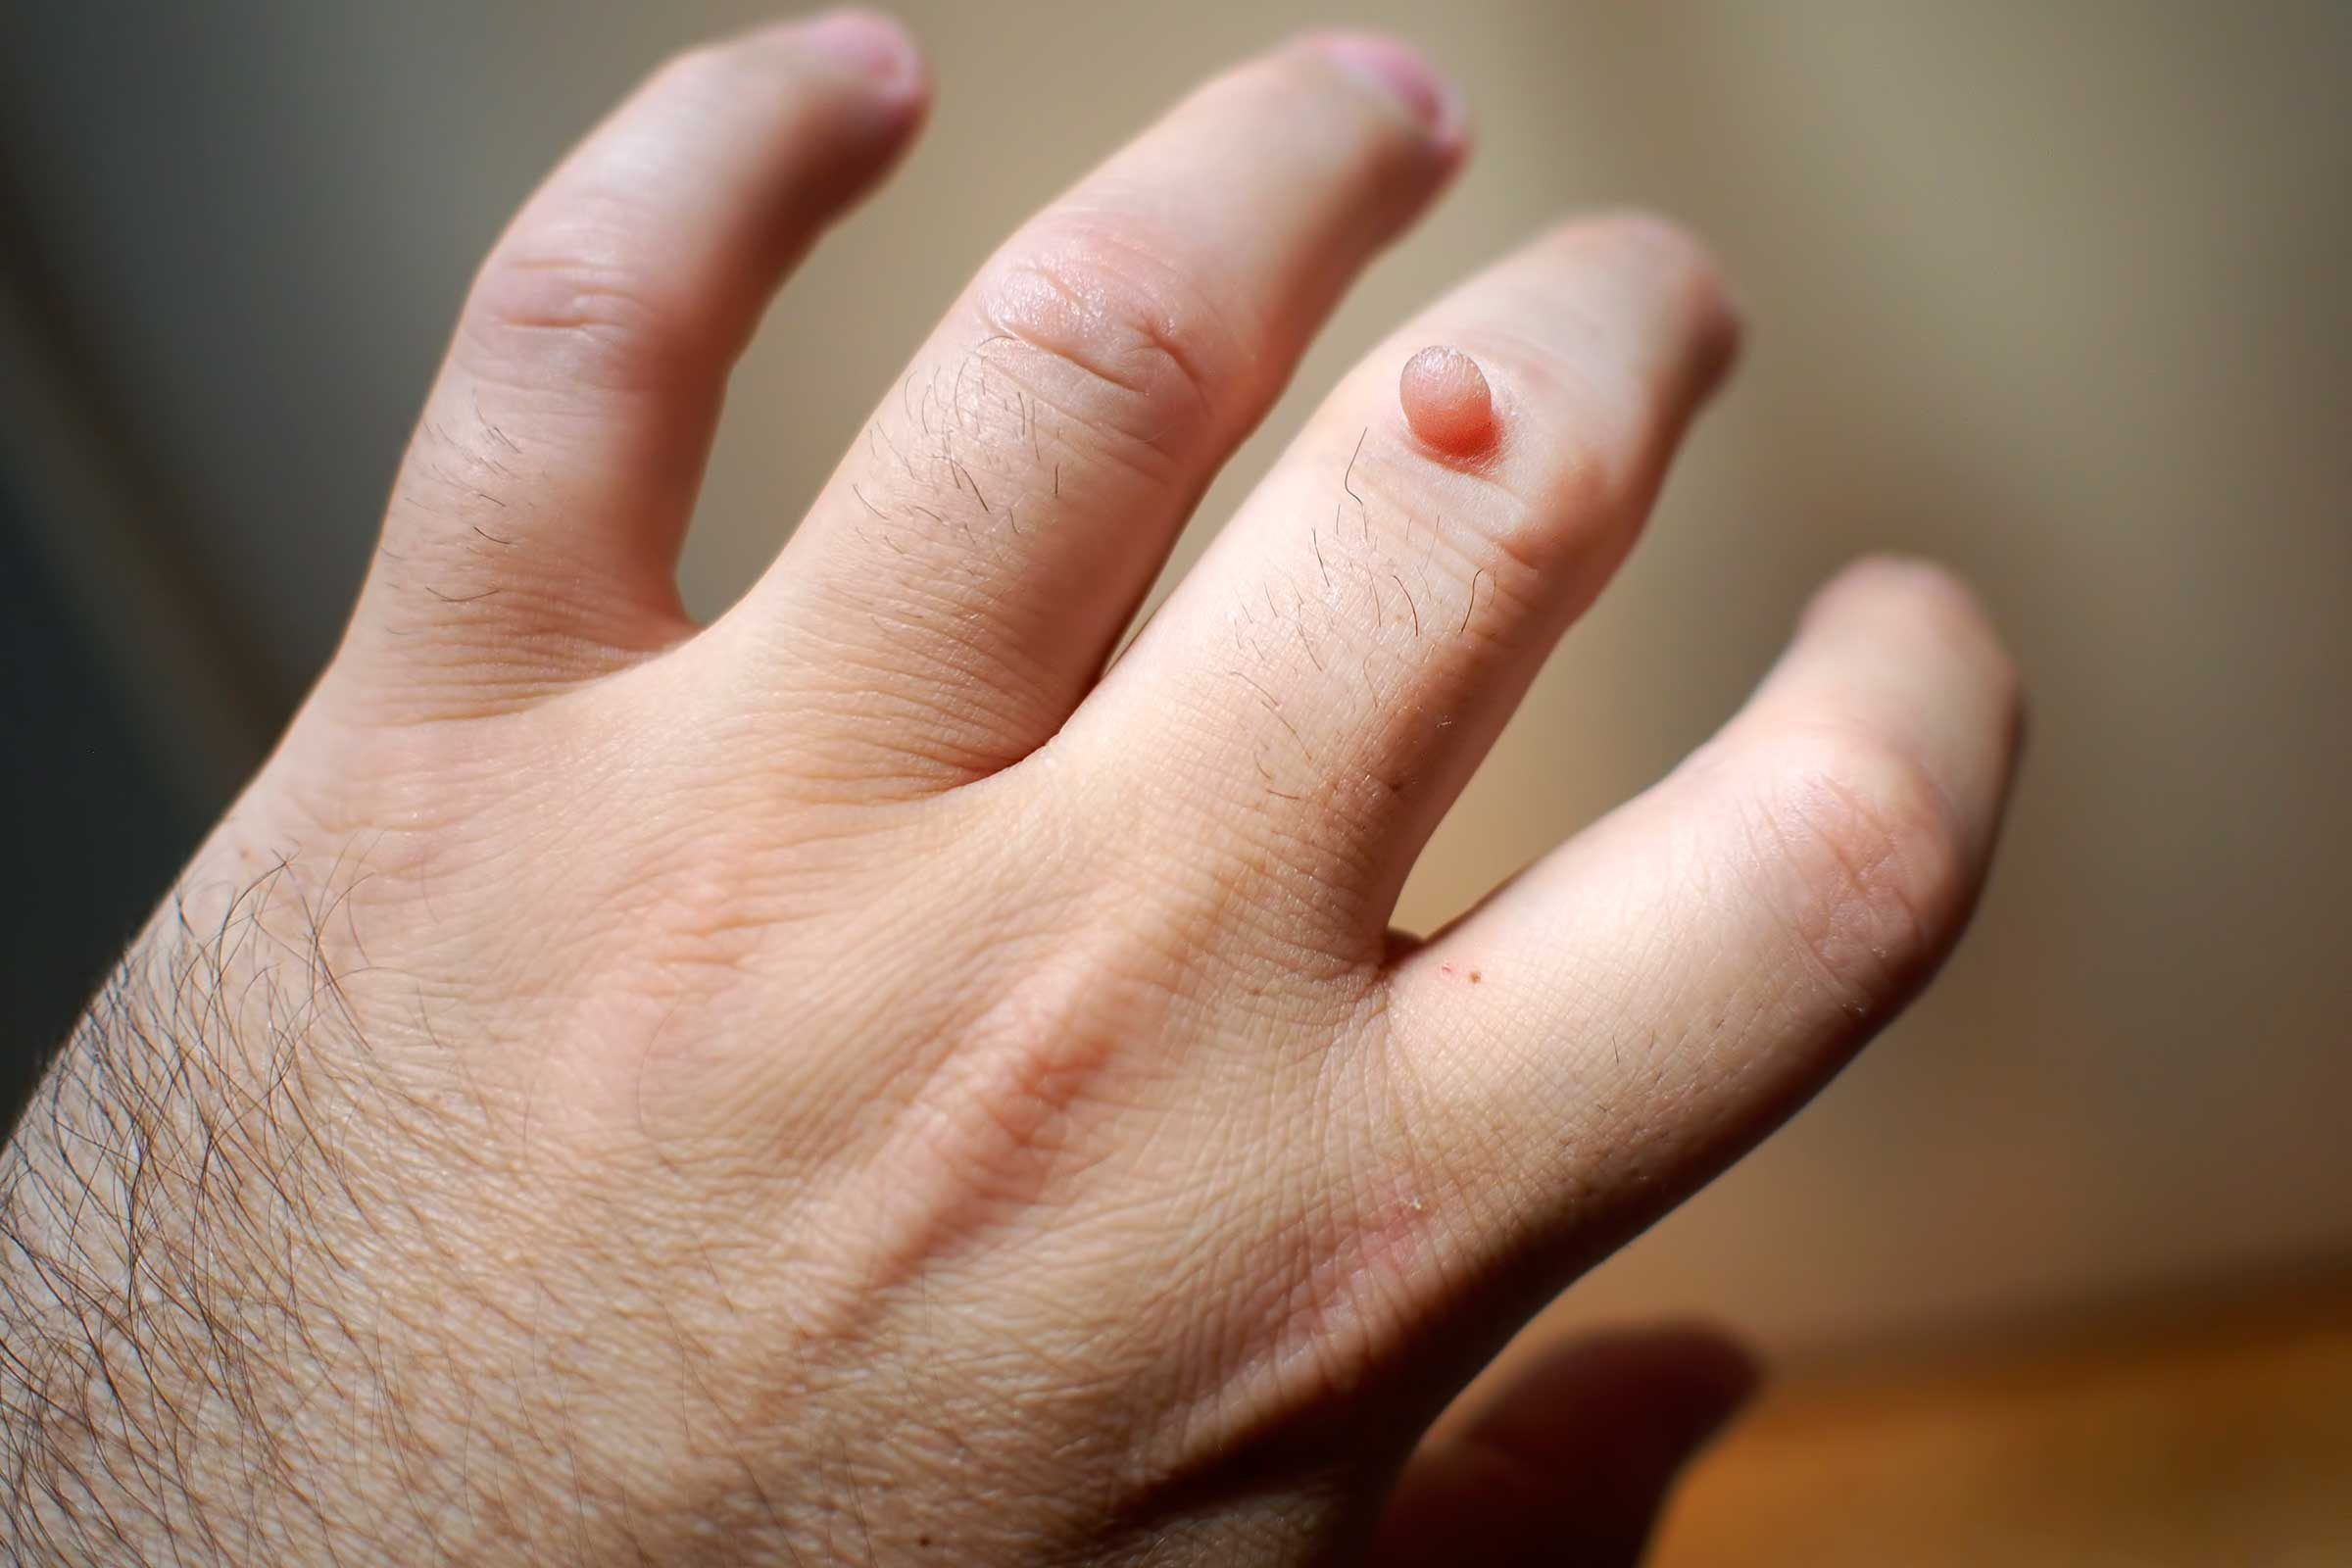 warts on hands keep coming back